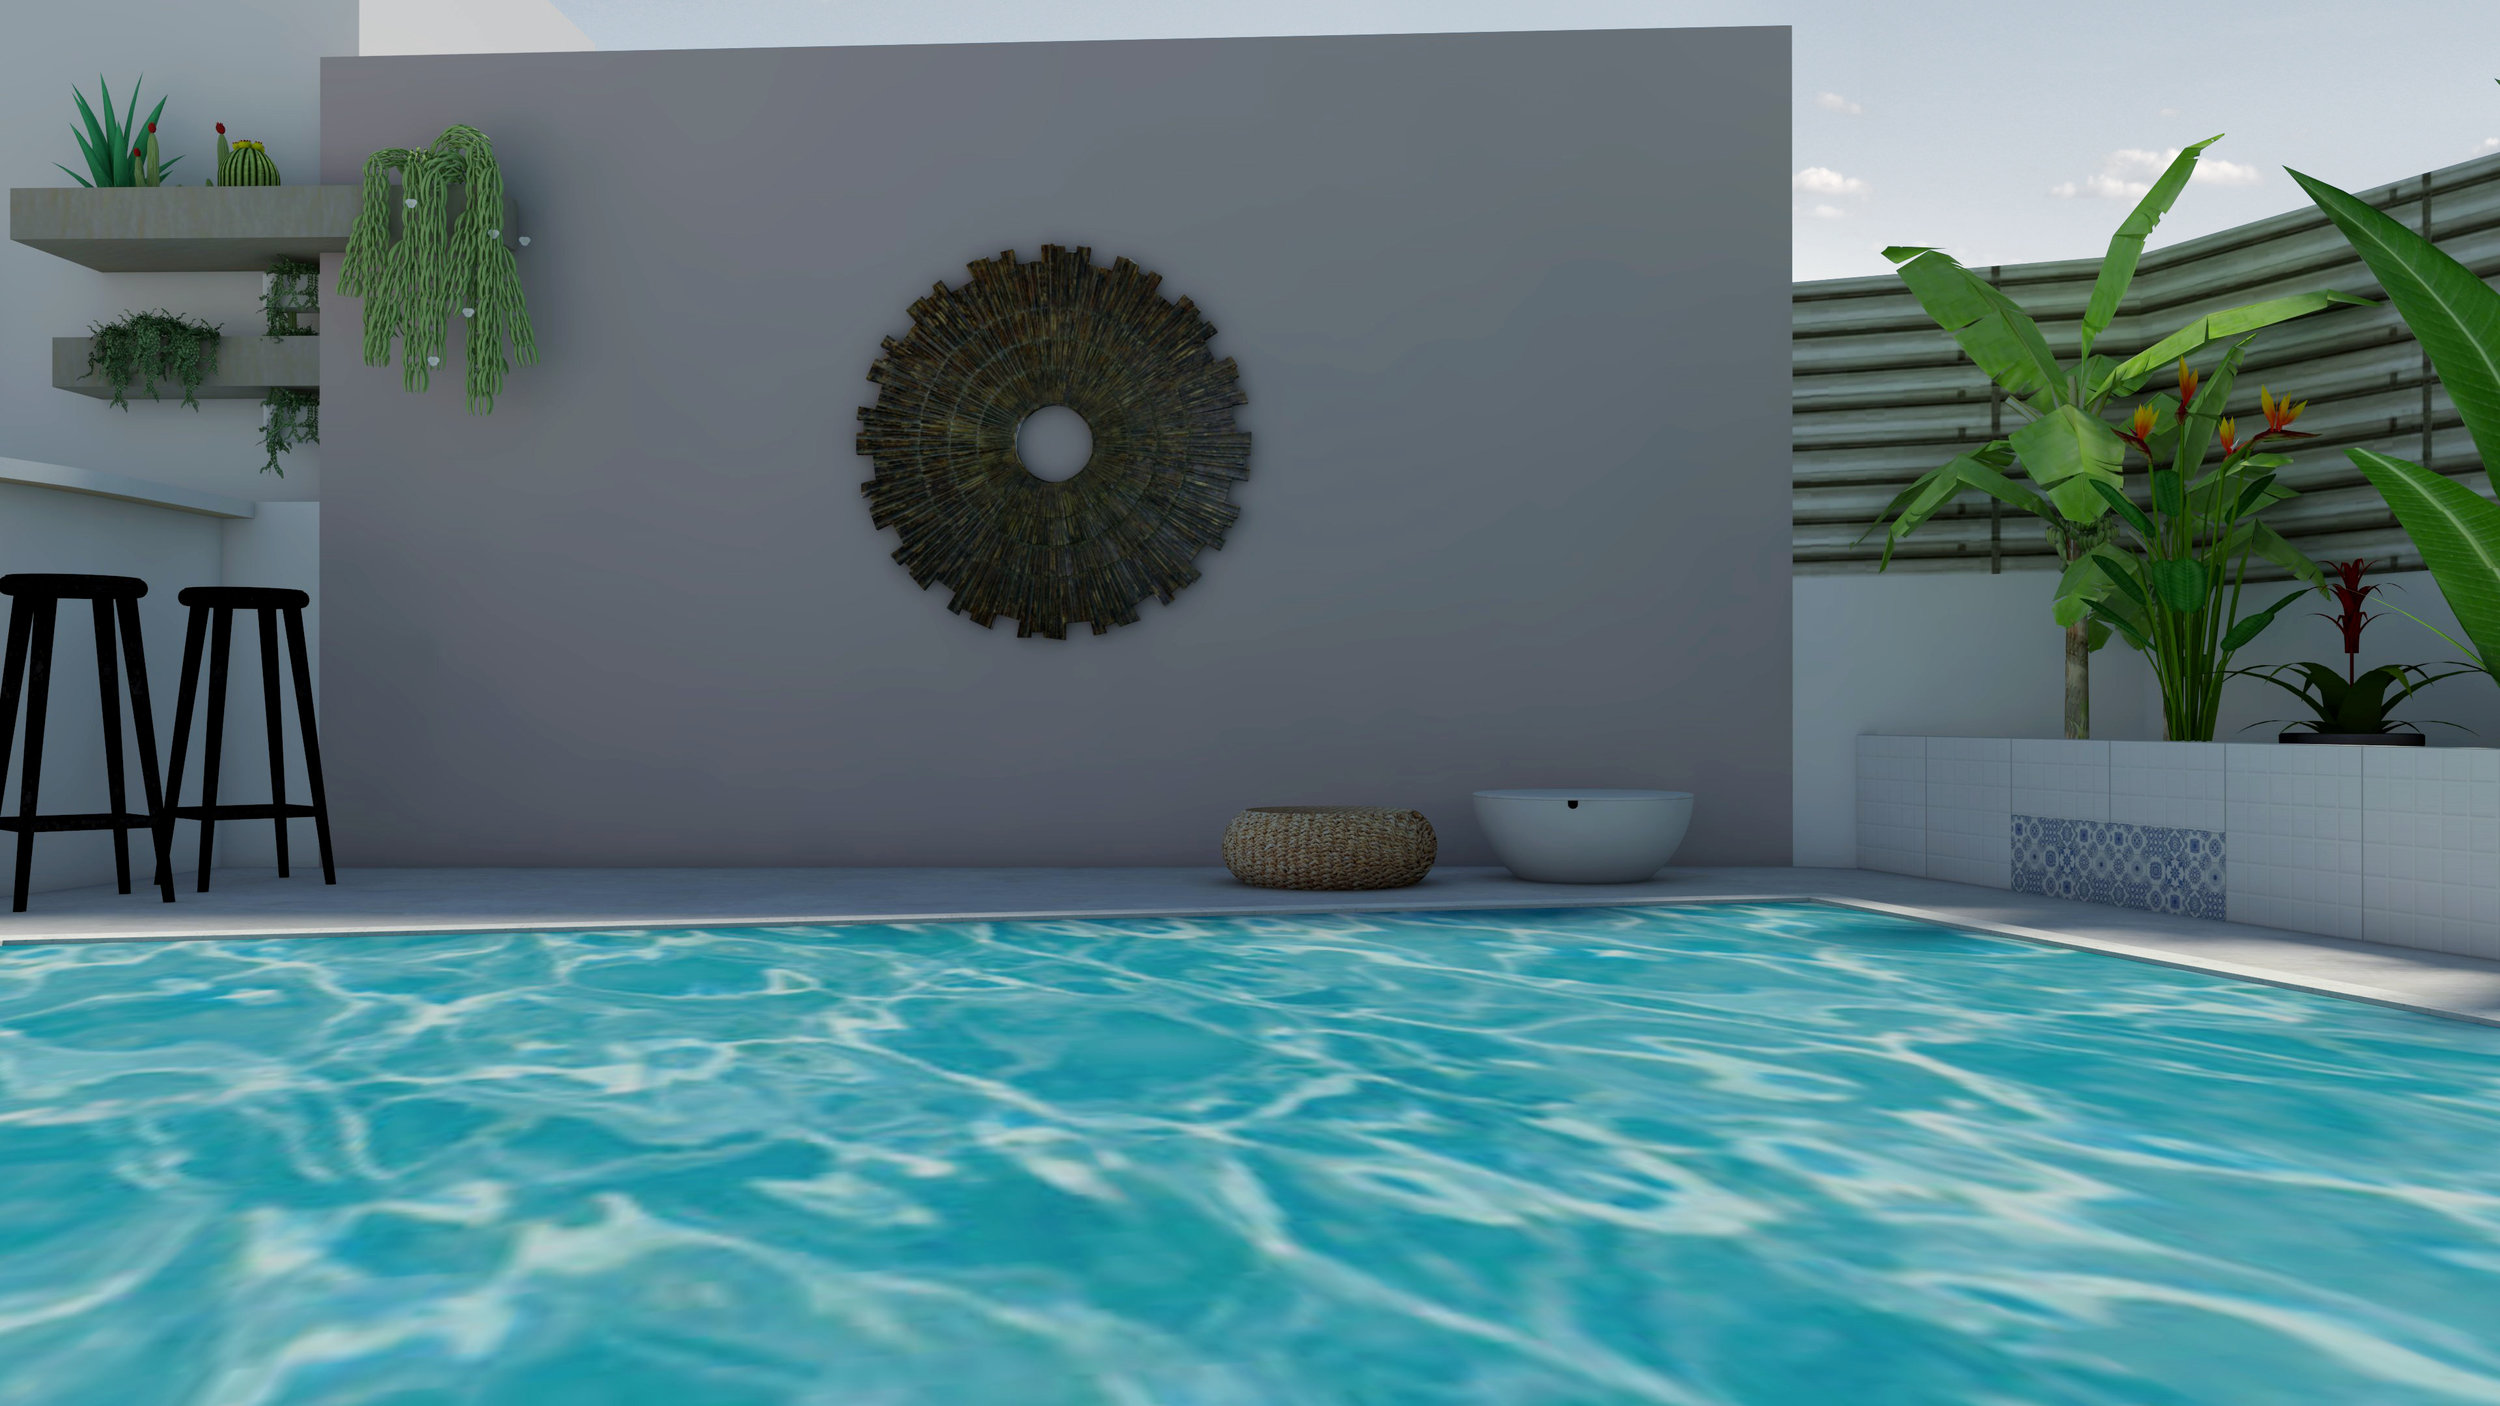 PRIVATE POOLSIDE LAYOUT - ΔΙΑΜΟΡΦΩΣΗ ΙΔΙΩΤΙΚΗΣ ΠΙΣΙΝΑΣ